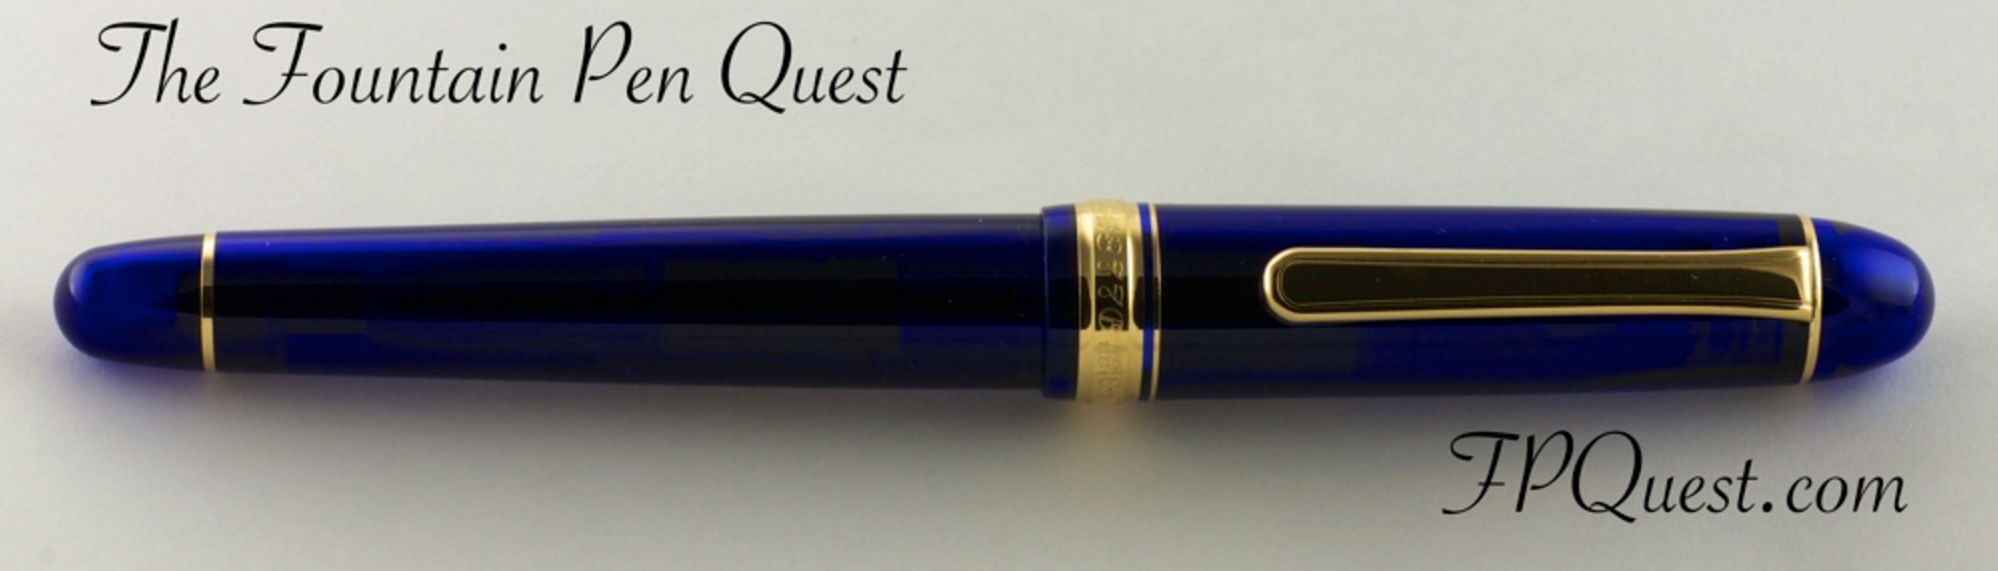 The Fountain Pen Quest